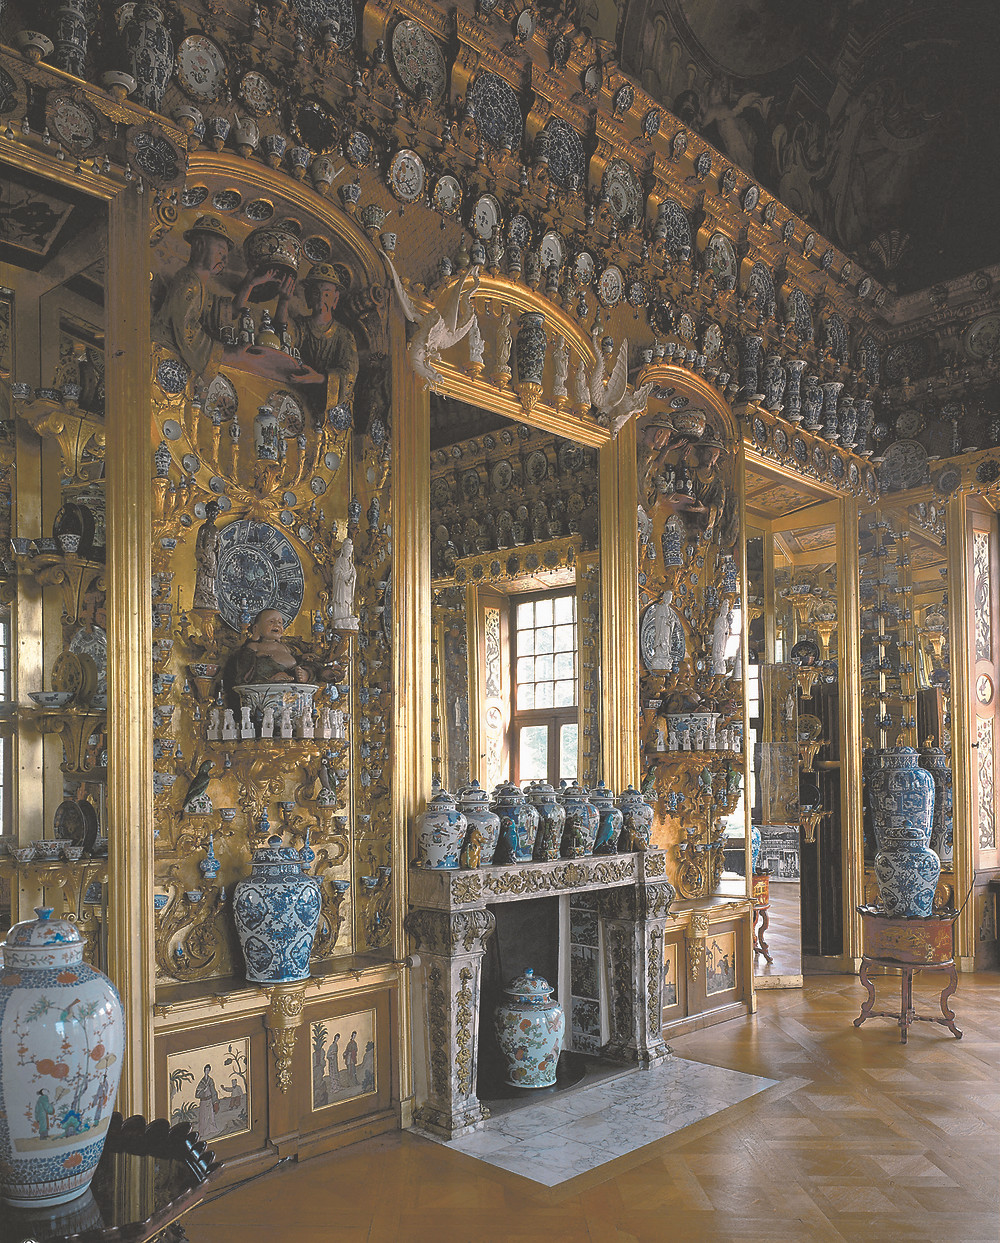 Porcelain cabinent, blue and white porcelain vases, ornate plates on wall. apanese and Chinese  porcelain in front of gilded and mirrored walls.